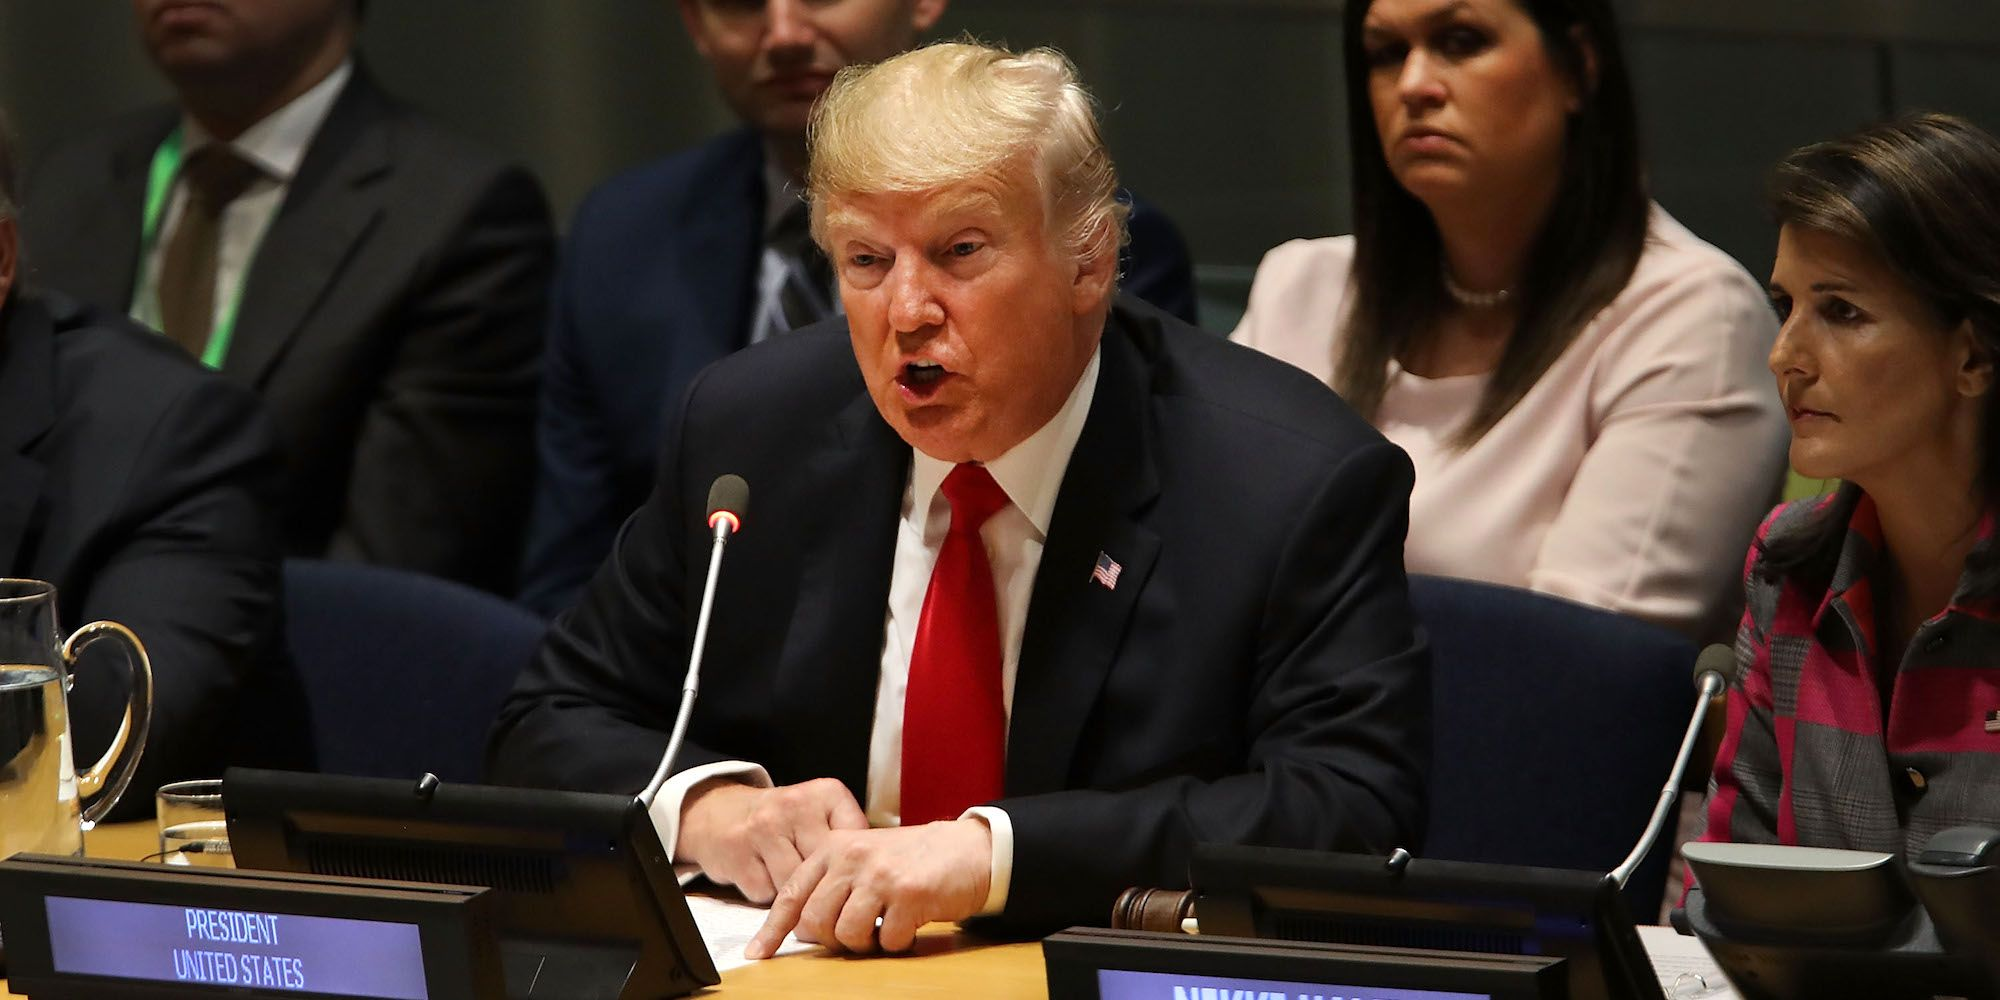 President Trump Attends UN Meeting On Global Drug Problem